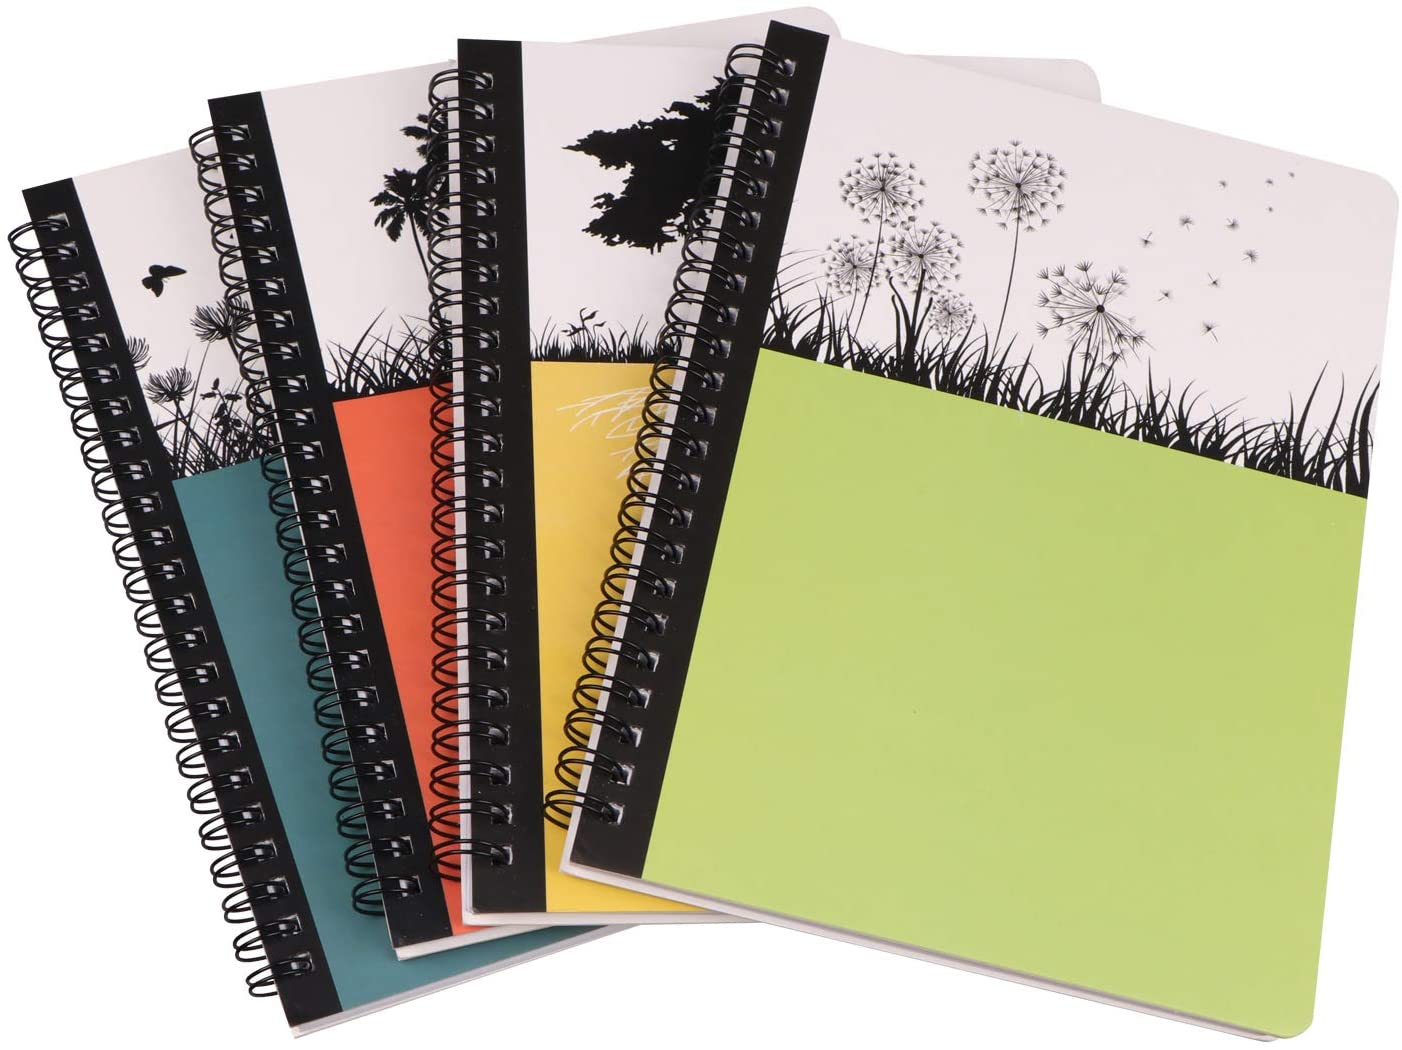 4 Packs Small Spiral Hardcover Bound Notebooks Dream Tree Notebooks For Diary Journal Writing Standard College Ruled Notebooks For School 5.5 x 8.3 inch 80 Sheets